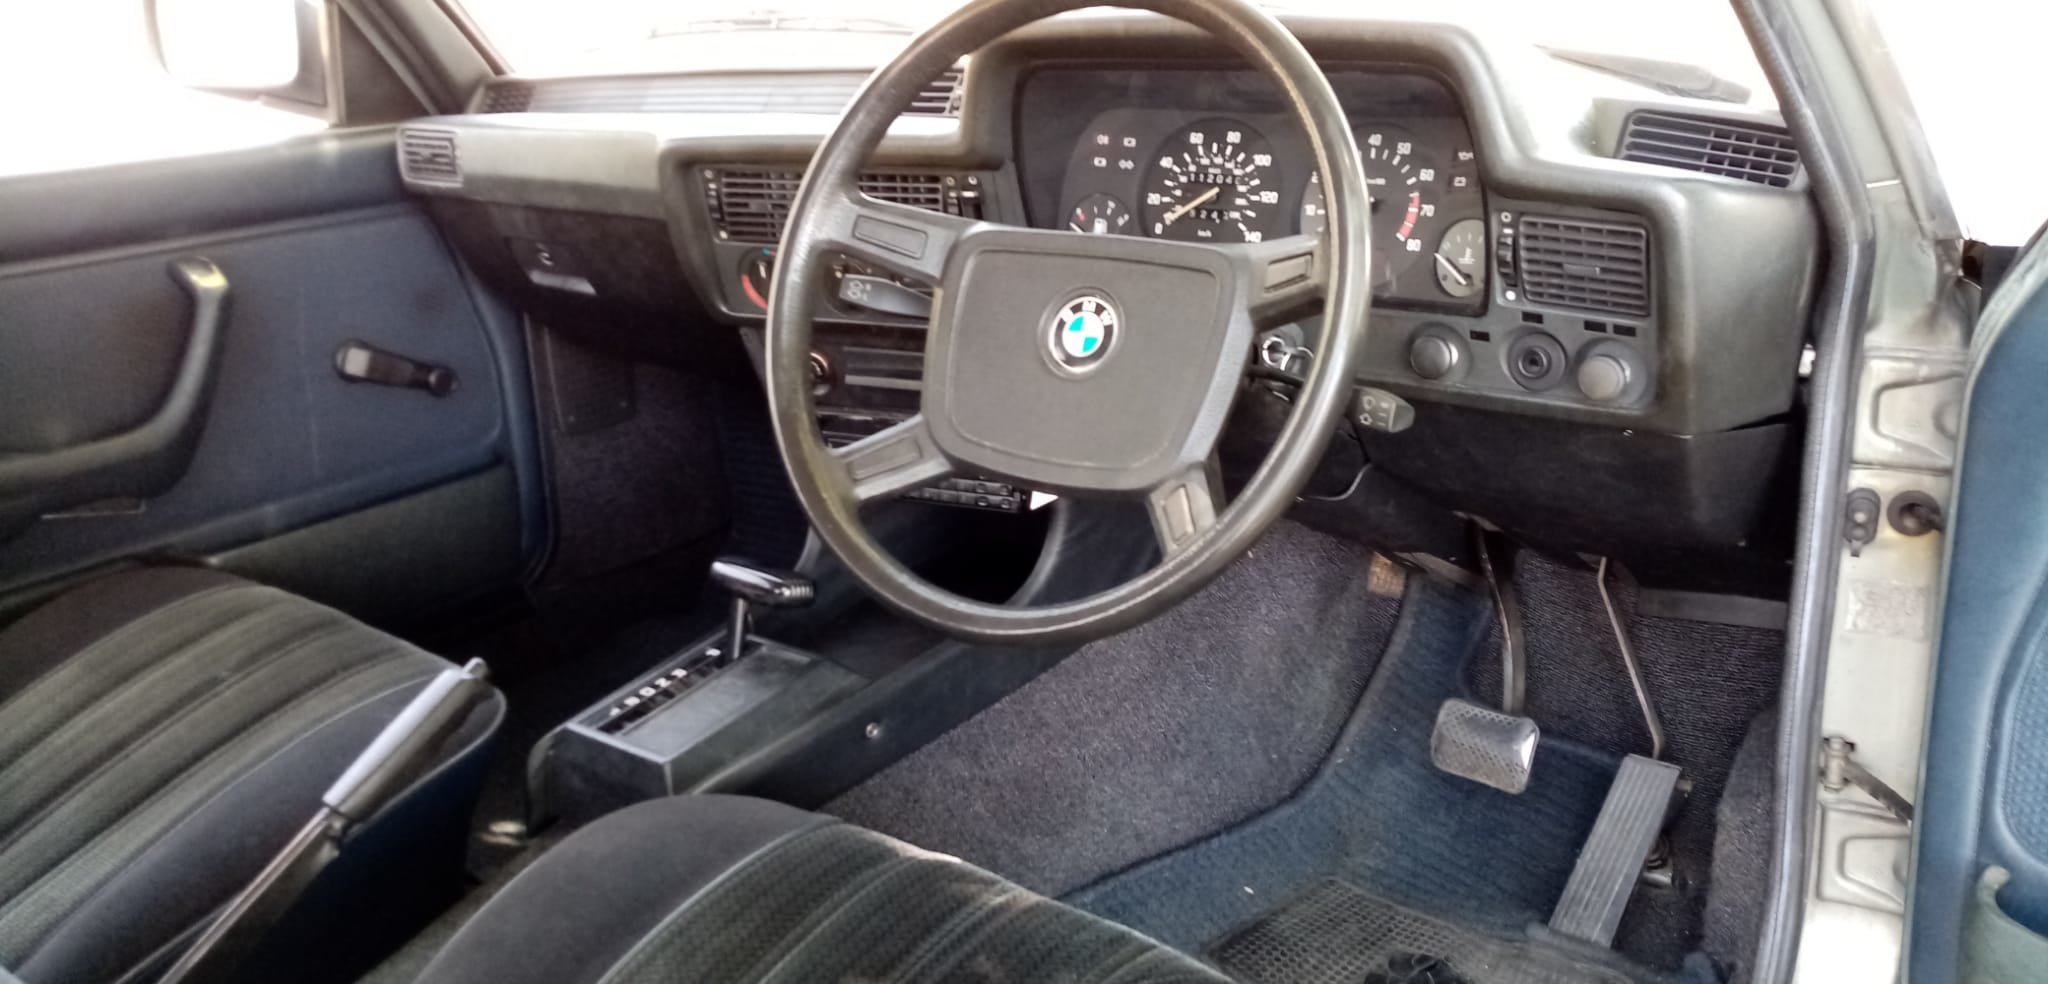 1982 BMW 320/6 e21 AUTO. 2 OWNERS. RHD. PRESERVED  For Sale (picture 2 of 6)